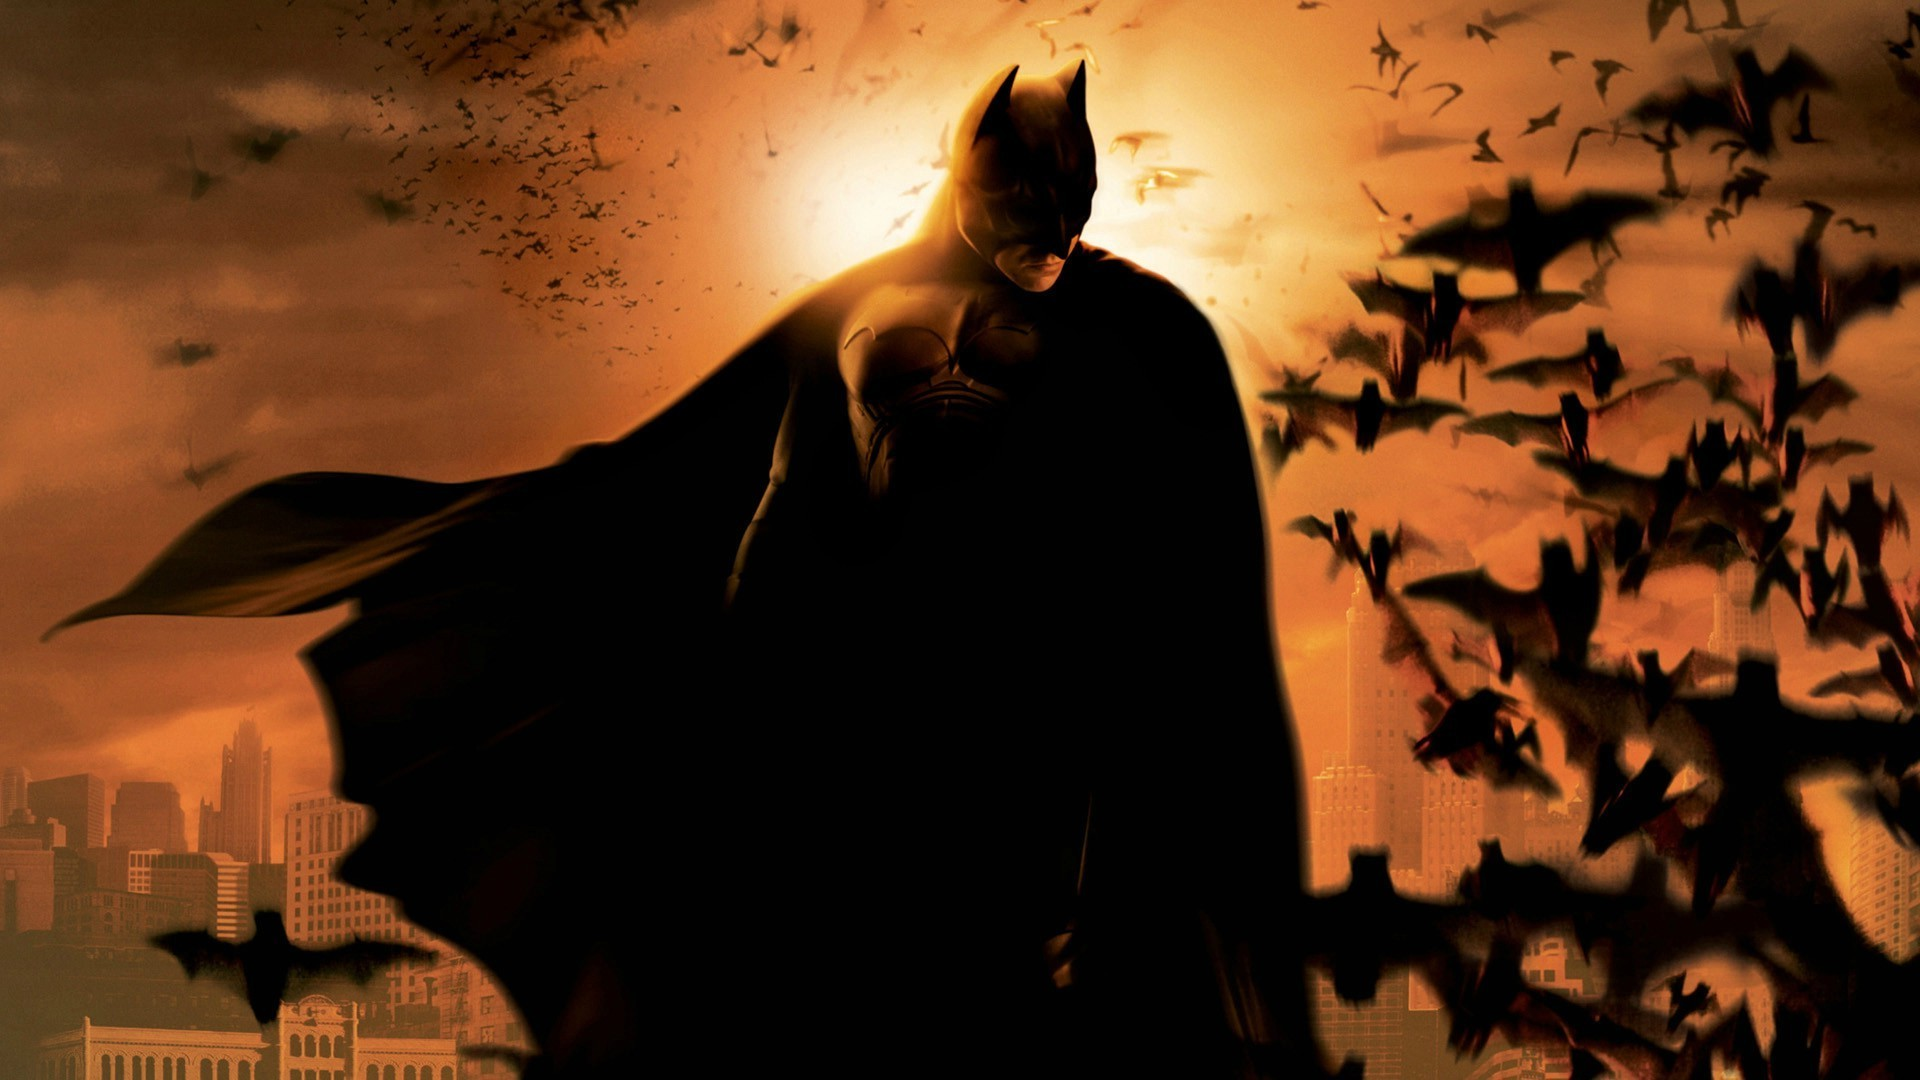 Nice wallpapers Batman Begins 1920x1080px